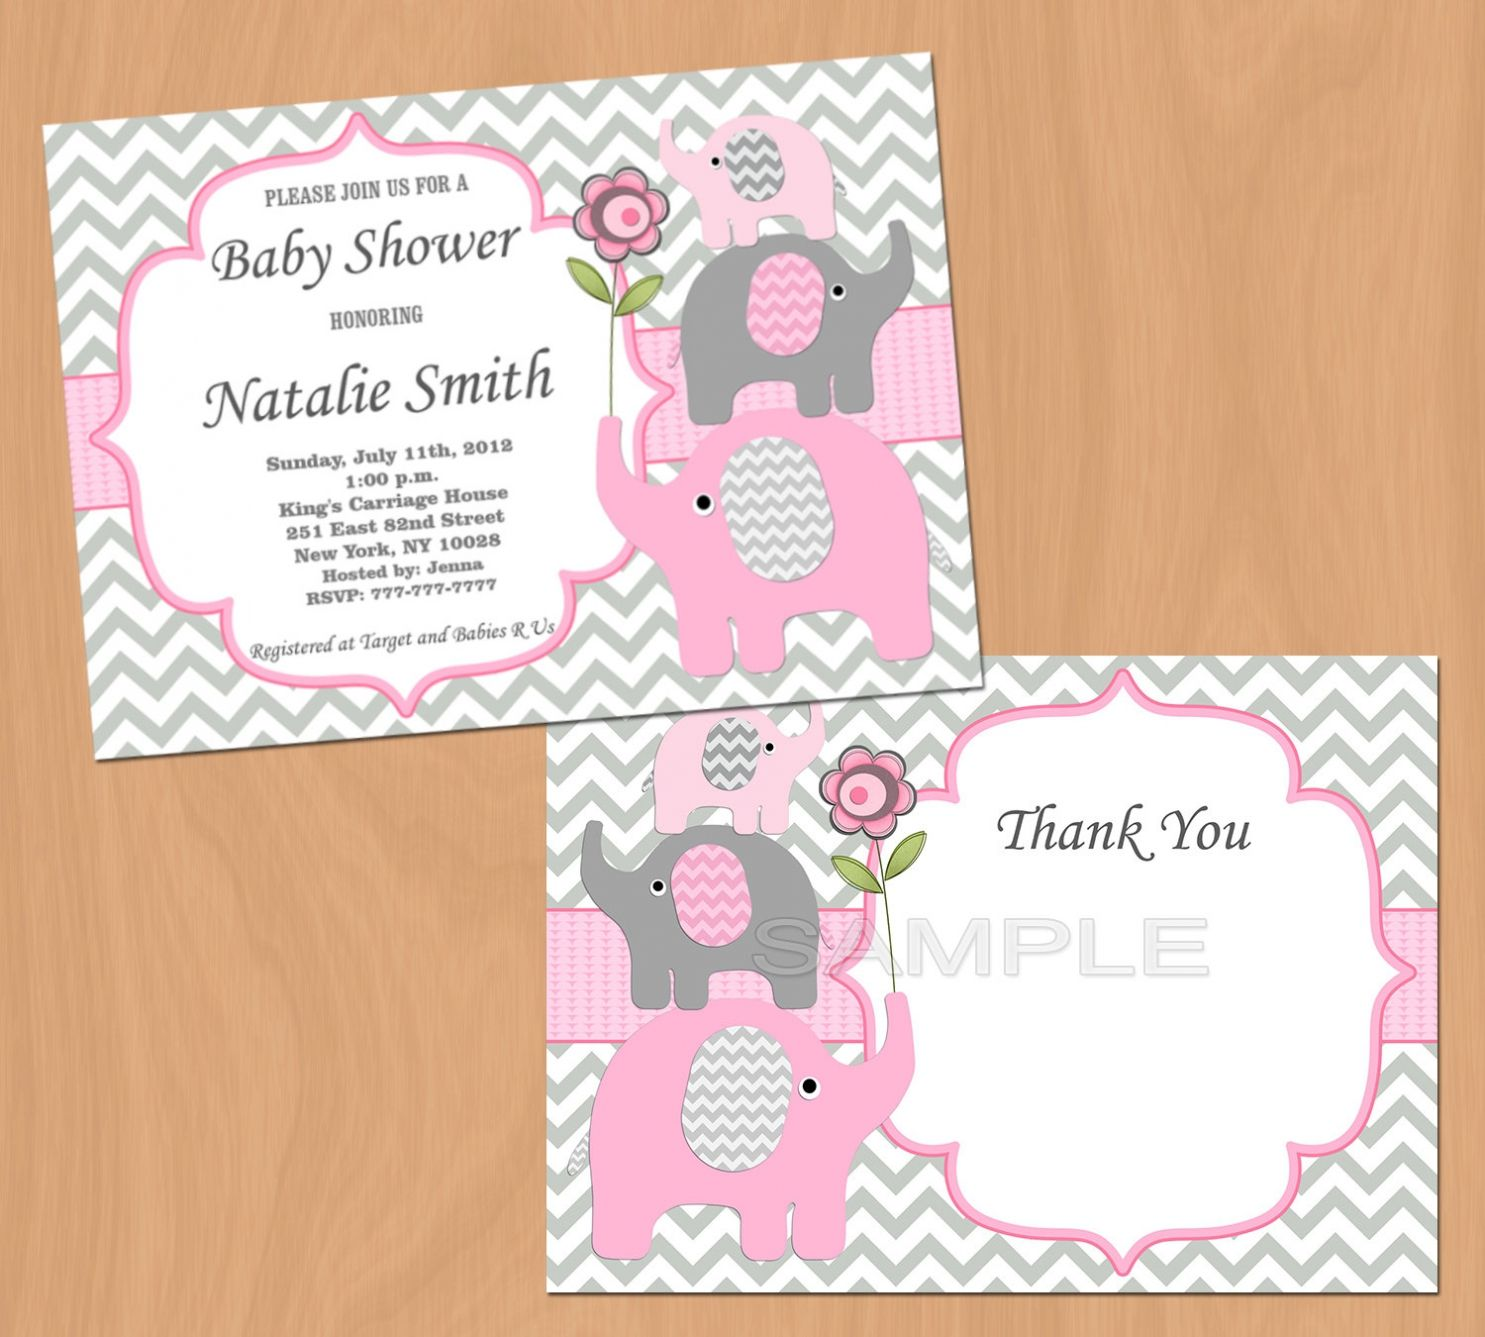 Cheap Baby Shower Invitations In Bulk to give additional inspiration ...